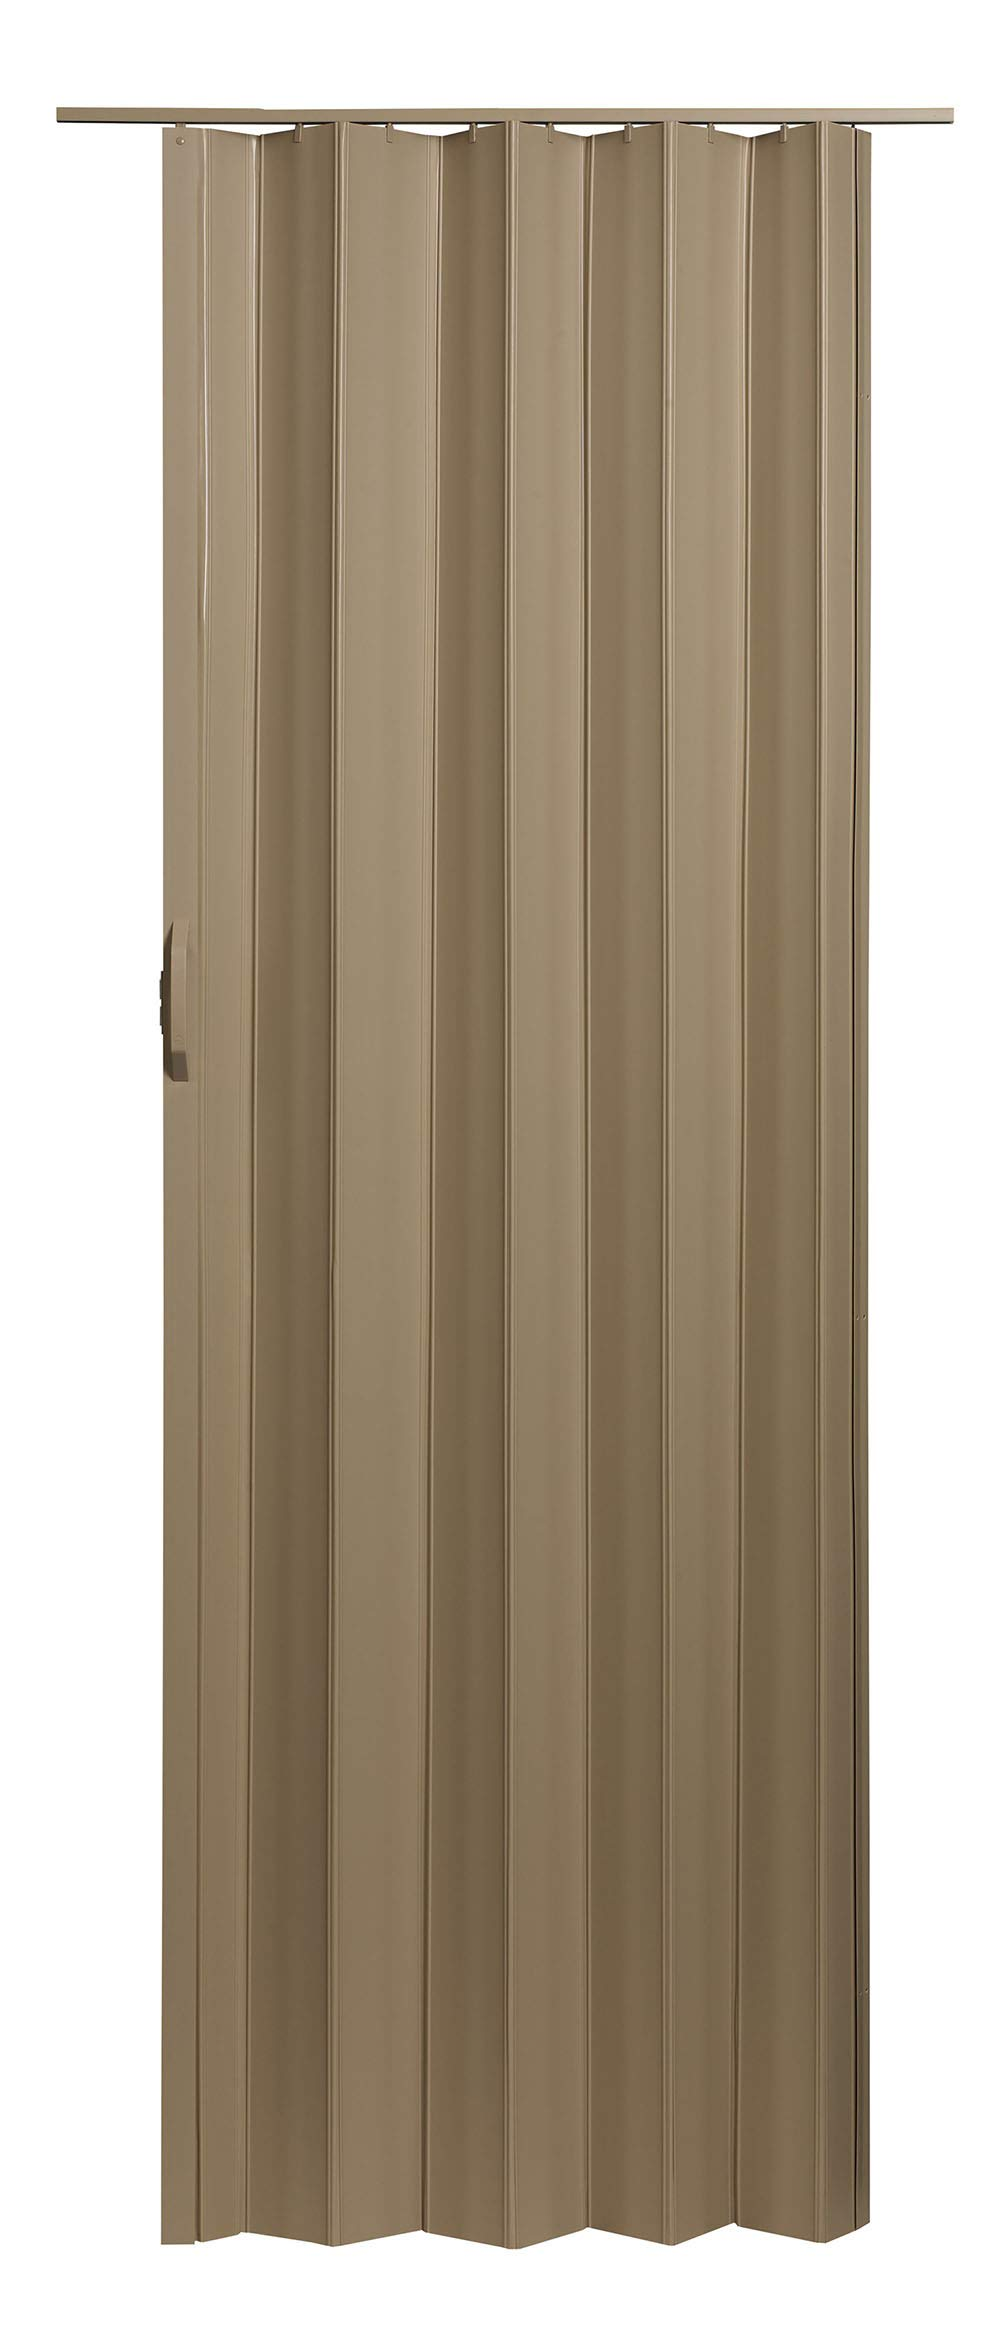 LTL Home Products SI3680TB Sienna Interior Accordion Folding Door, 36 x 80'', Timber Beige by LTL Home Products